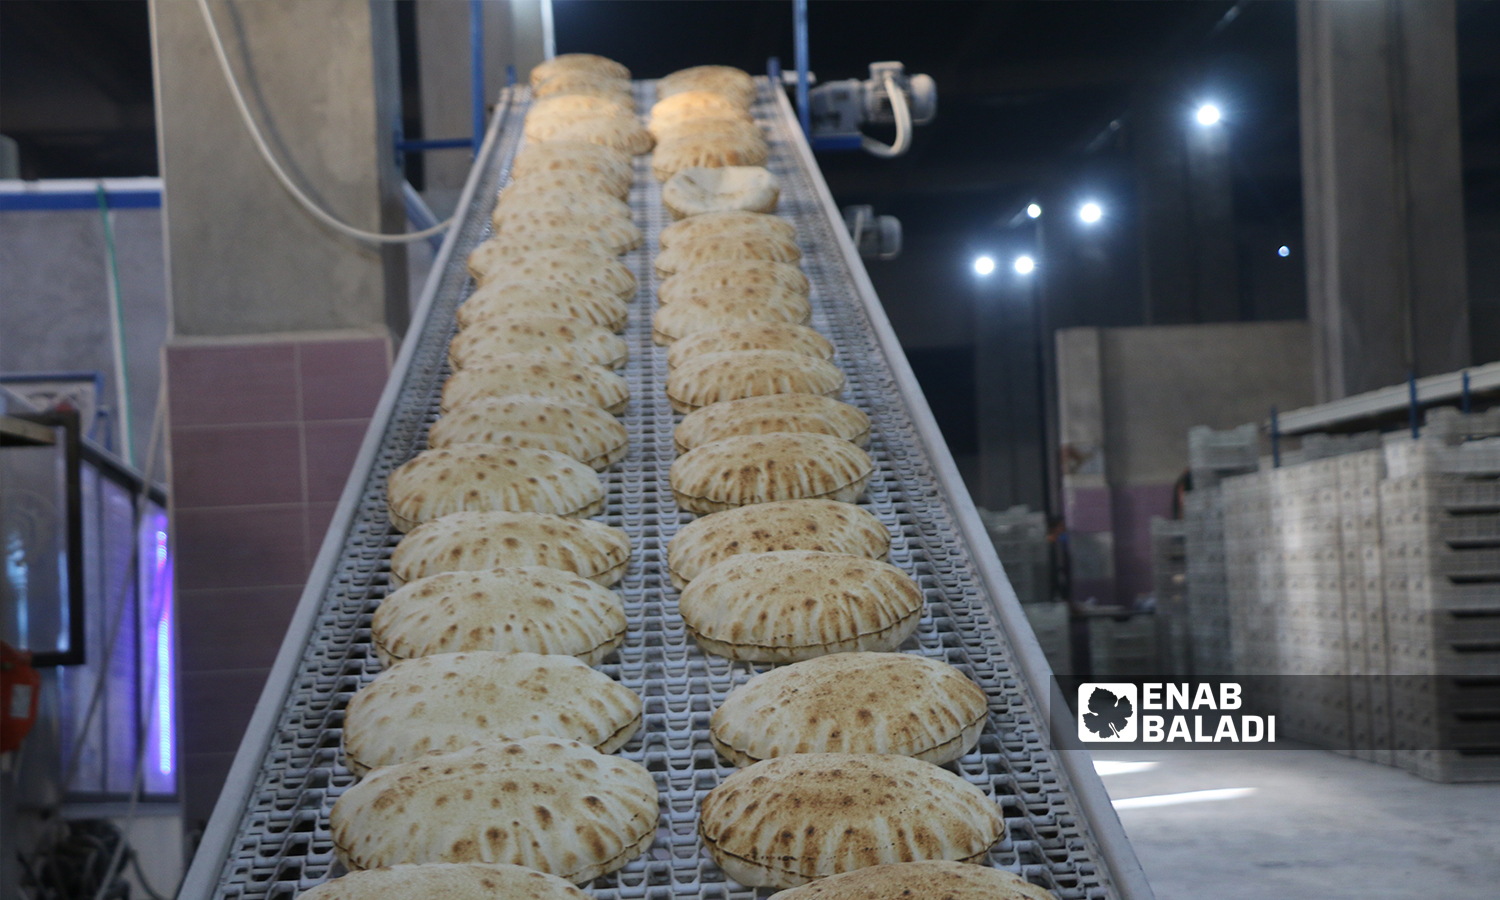 The bakery's fourth new production line established by the local council in al-Bab city - 8 October 2021 (Enab Baladi - Siraj Mohammed)